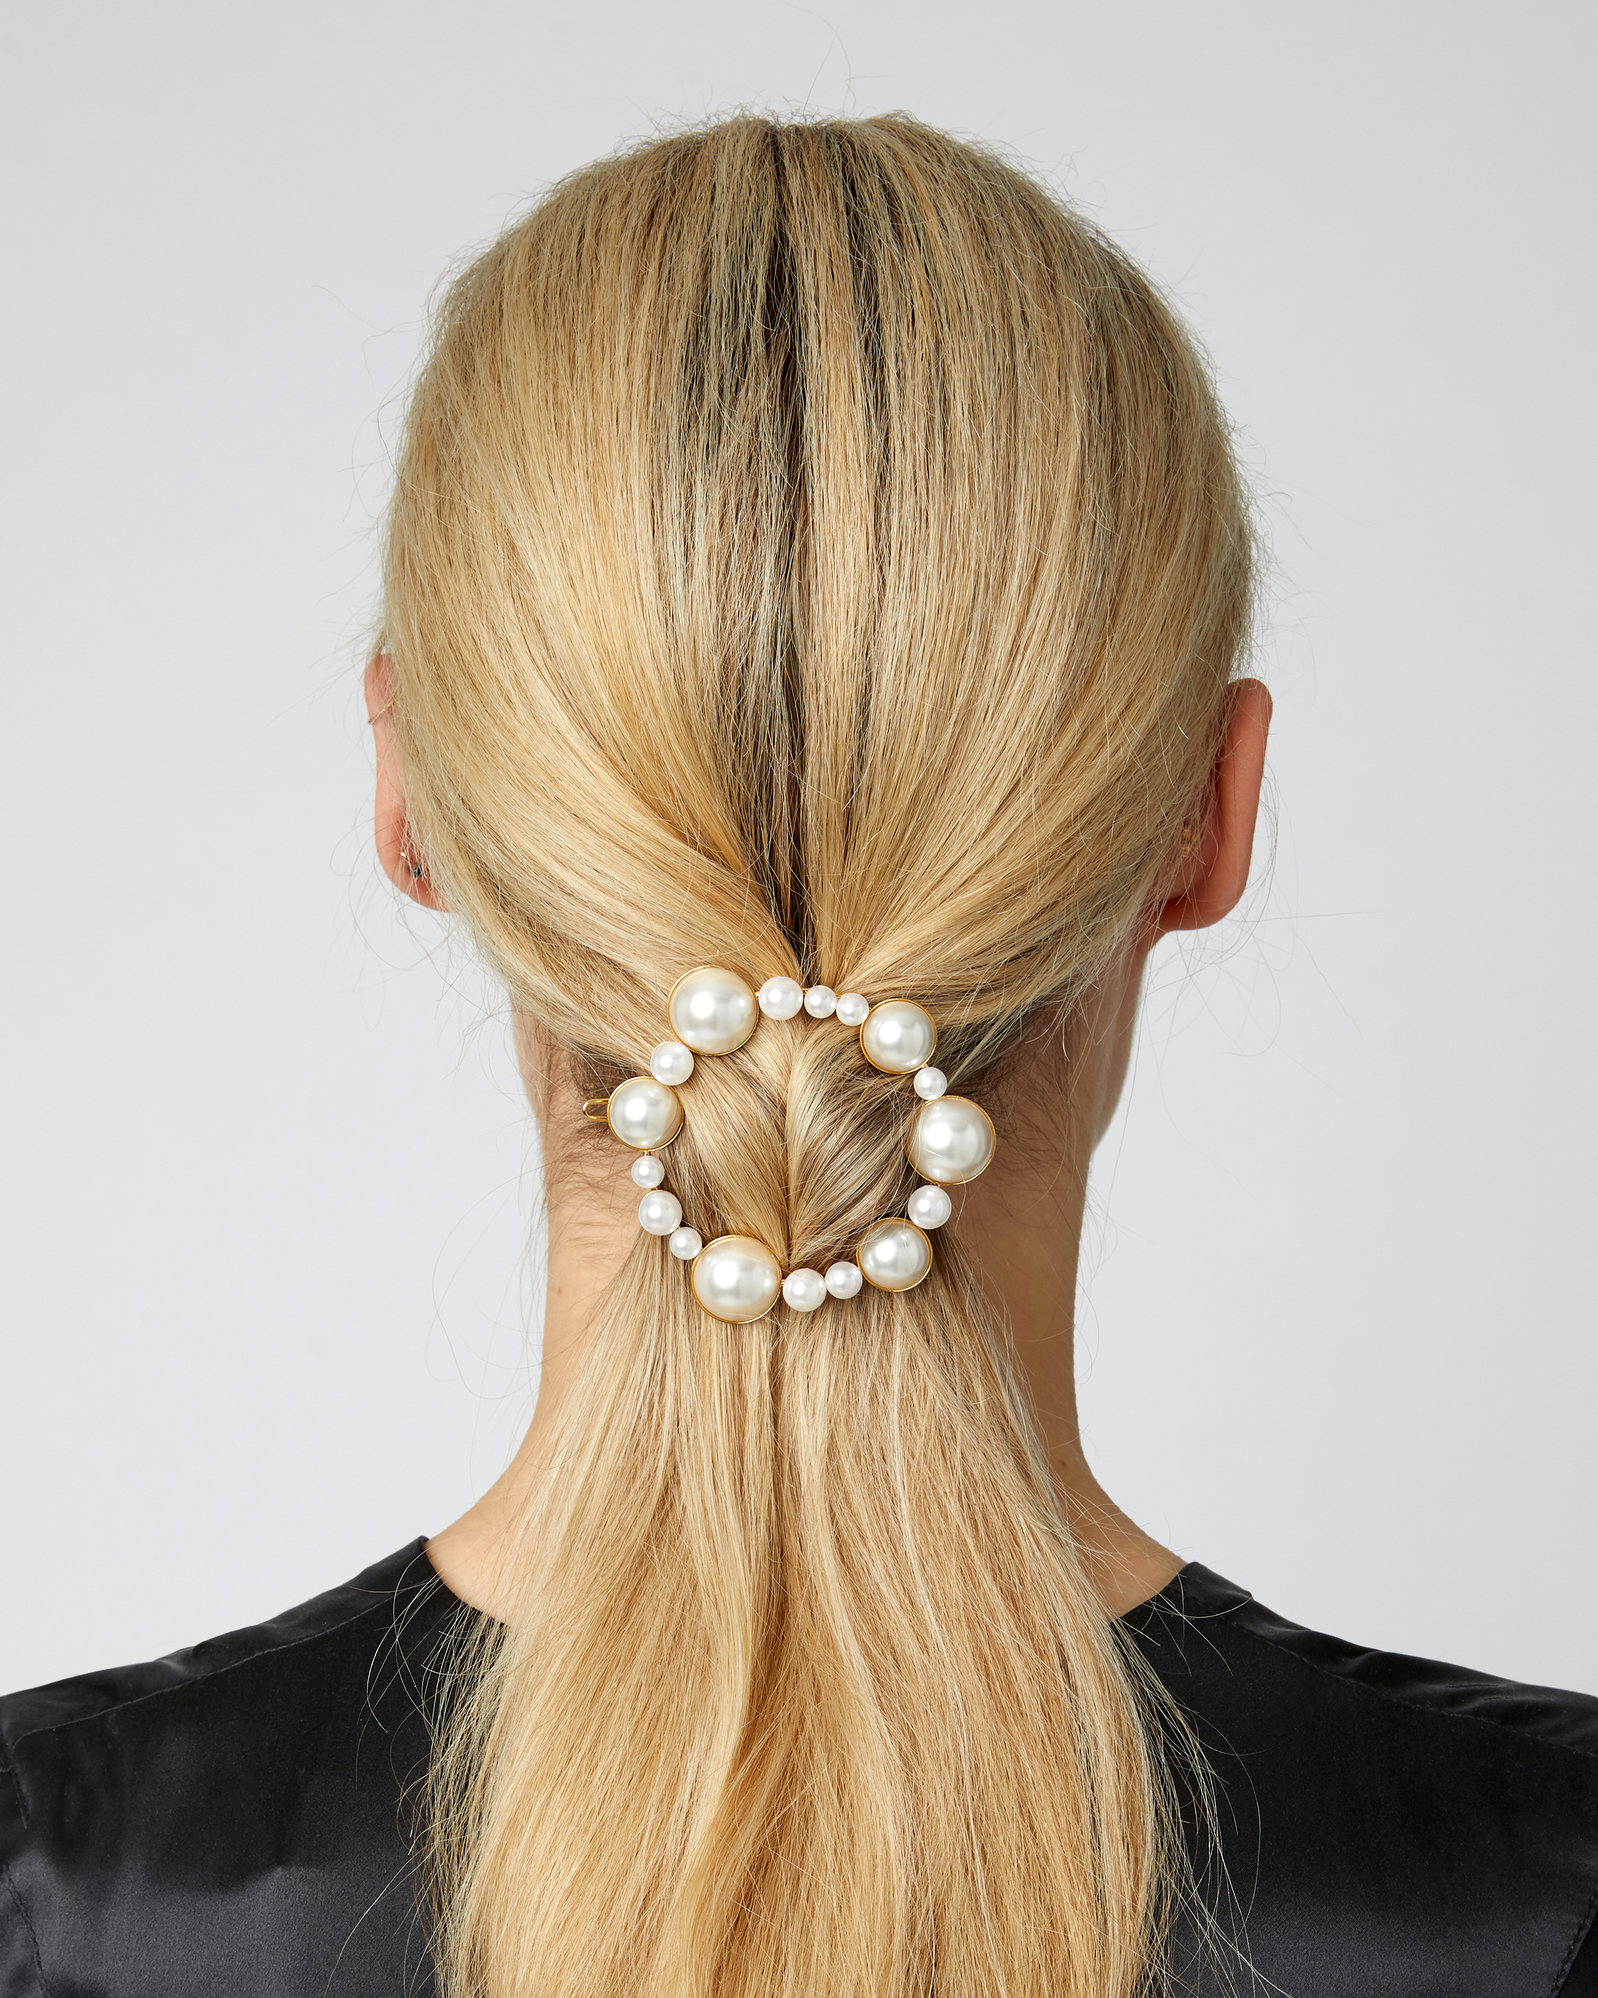 14-Karat Gold Plated Faux-Pearl Barrette